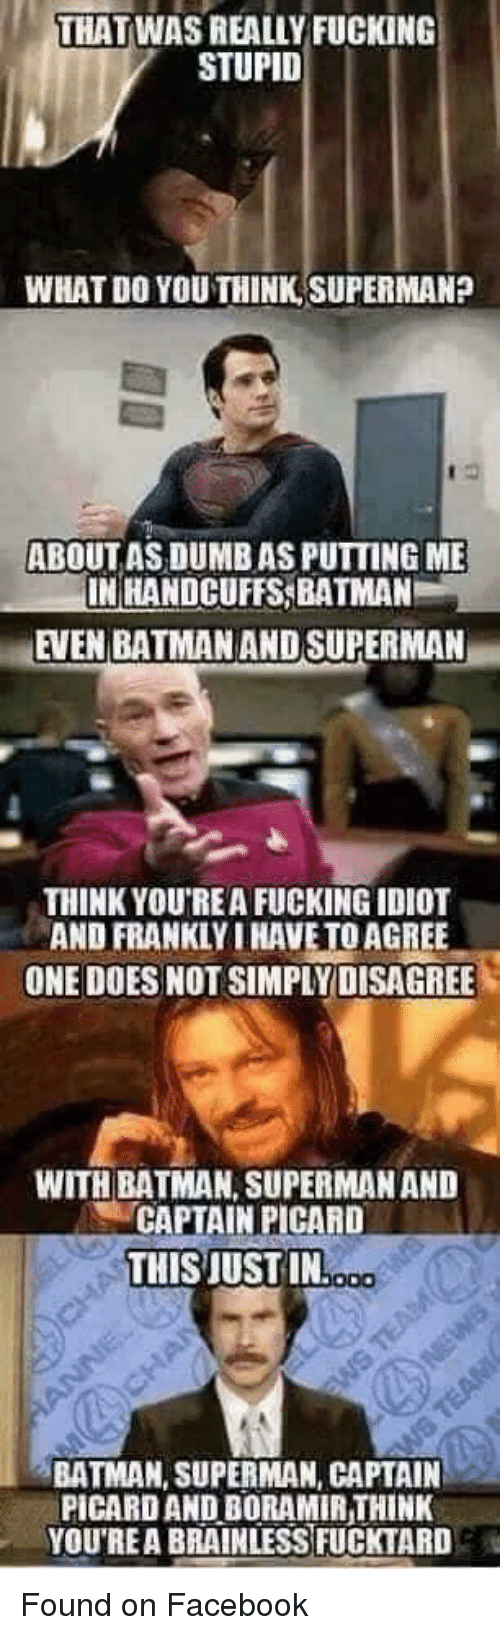 captain picard: THAT WASREALLY FUCKING  STUPID  WHAT DO YOU THINK SUPERMAN?  ABOUT AS DUMB AS PUTTING ME  IN HANDCUFFS, BATMAN  EVEN BATMAN AND SUPERMAN  THINK YOU'REA FUCKING IDIOT  AND FRANKLY I HAVE TOAGREE  ONE DOES NOT SIMPLY DISAGREE  WITH BATMAN, SUPERMAN AND  CAPTAIN PICARD  THISJUST IN  BATMAN, SUPERMAN, CAPTAIN  PICARD ANDBORAMIRTHINK  YOU'REA BRAINLESS FUCKTARD